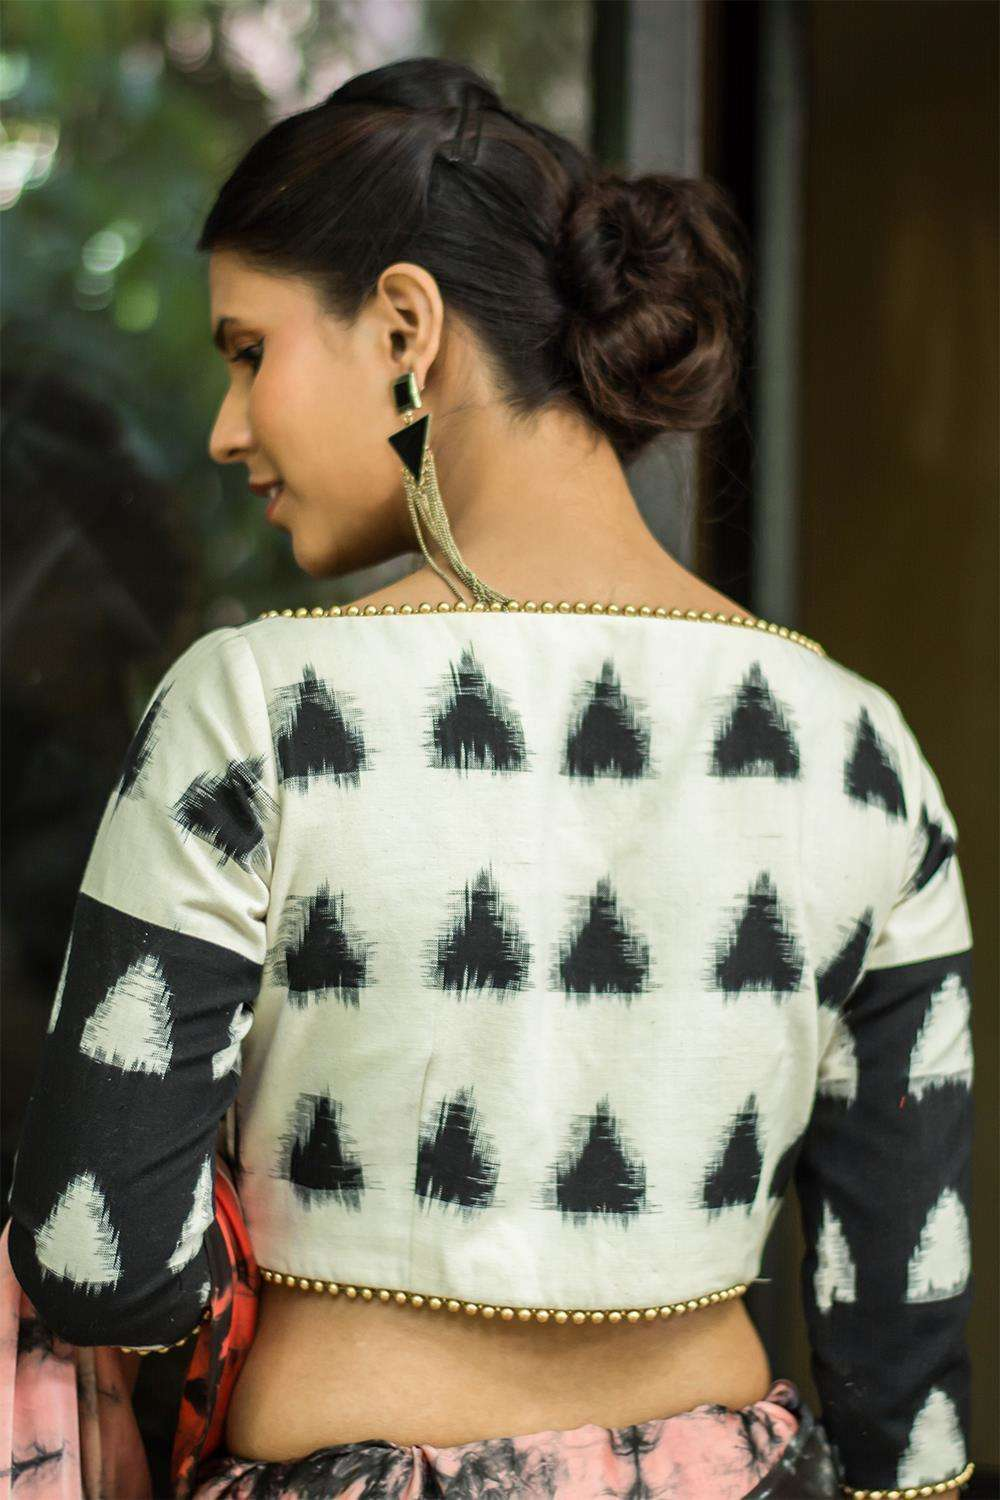 Black and white two fabric Ikat blouse with gold bead detailing - House of Blouse